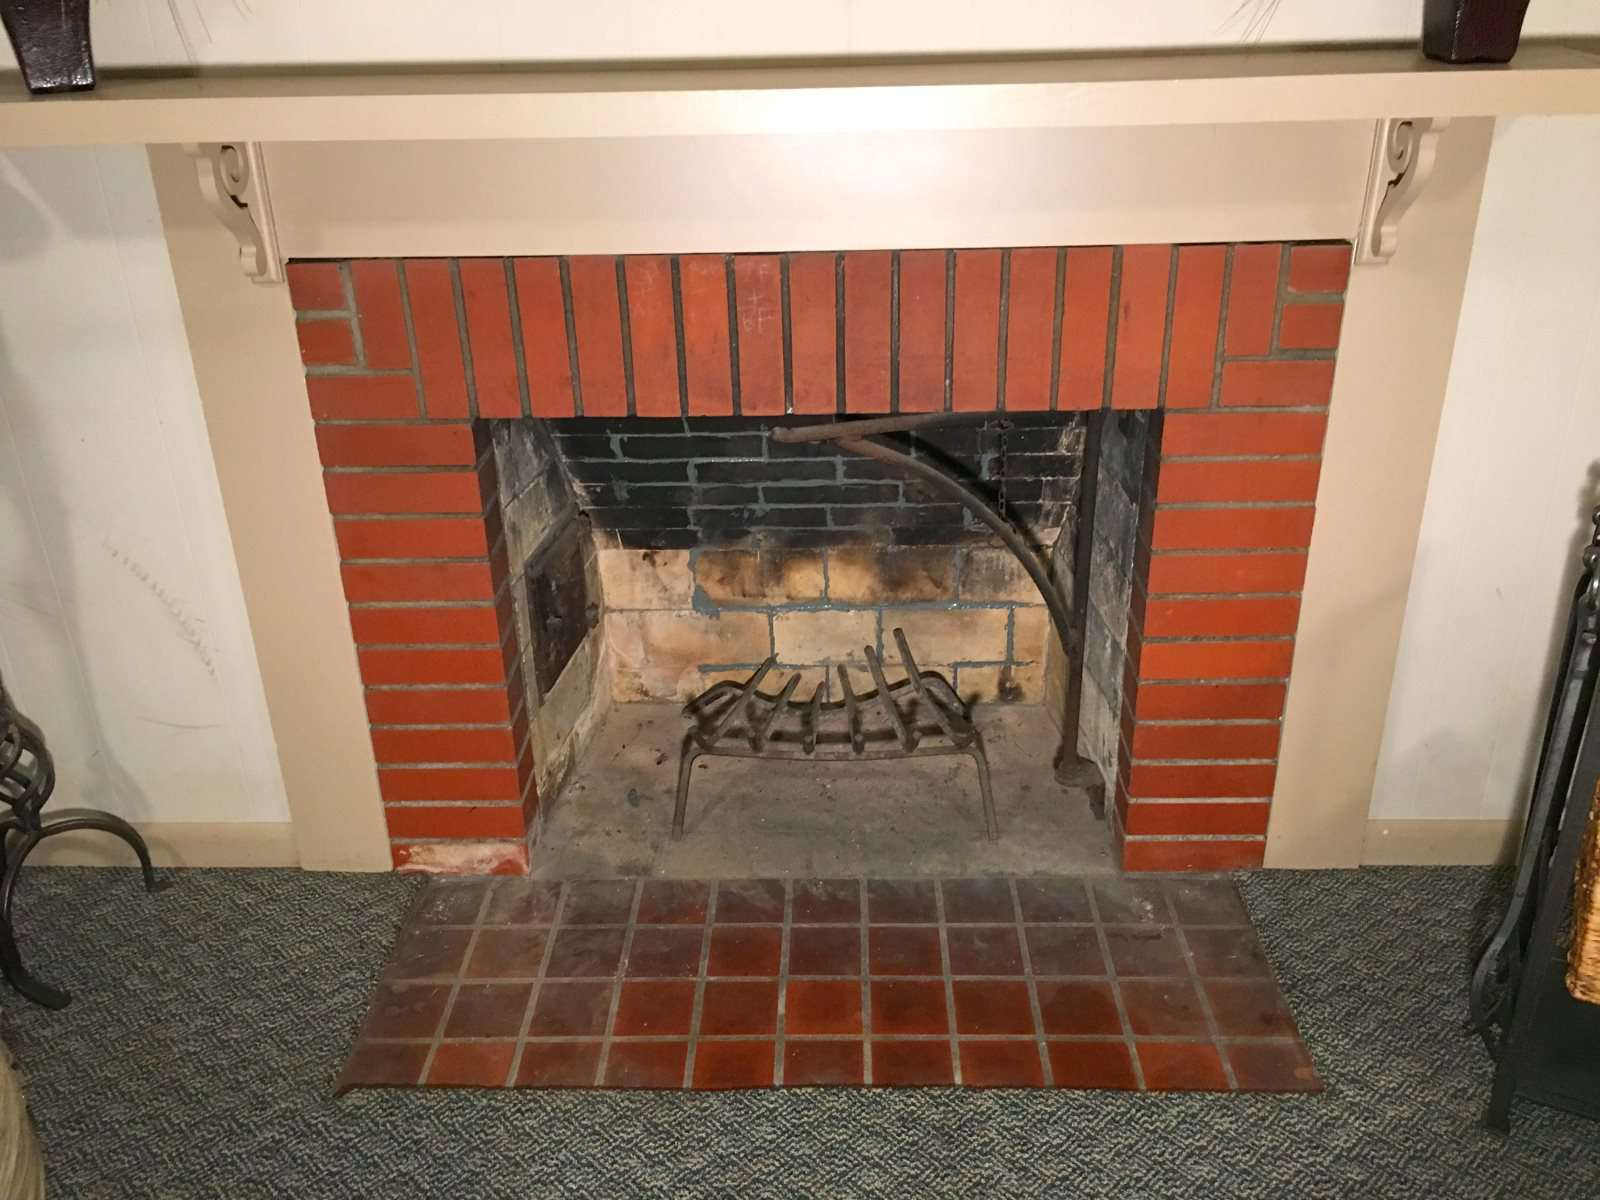 Marvelous How To Fix Mortar Gaps In A Fireplace Fire Box Home Remodeling Inspirations Propsscottssportslandcom